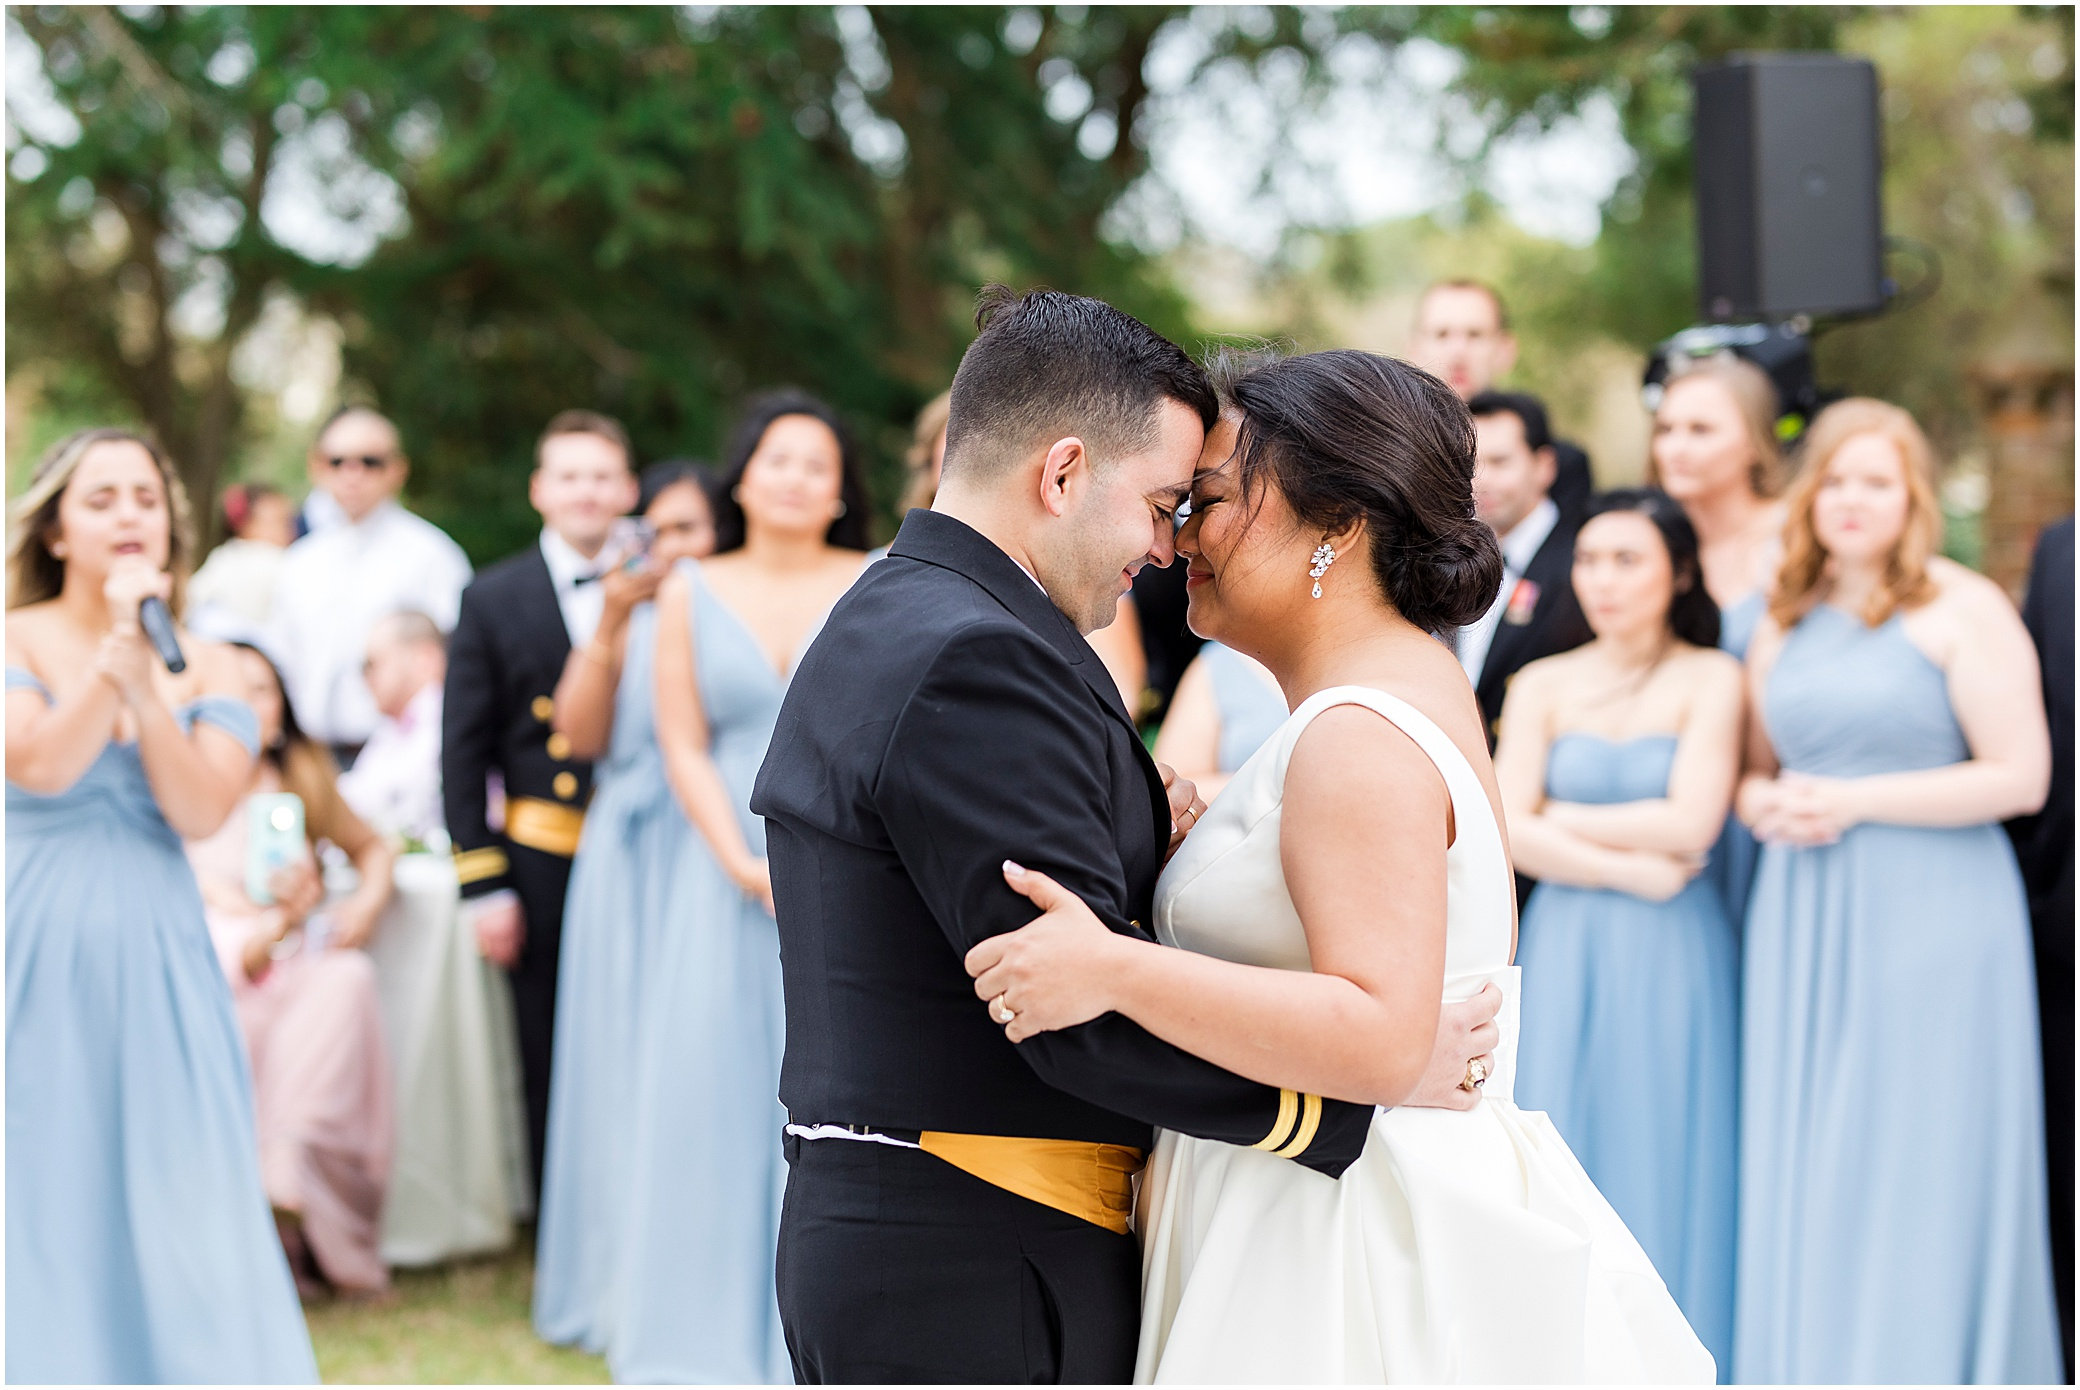 bride and groom first dance, spring wedding at the hermitage museum and gardens, Jessica Ryan photography, sunkissed events, outdoor wedding reception,